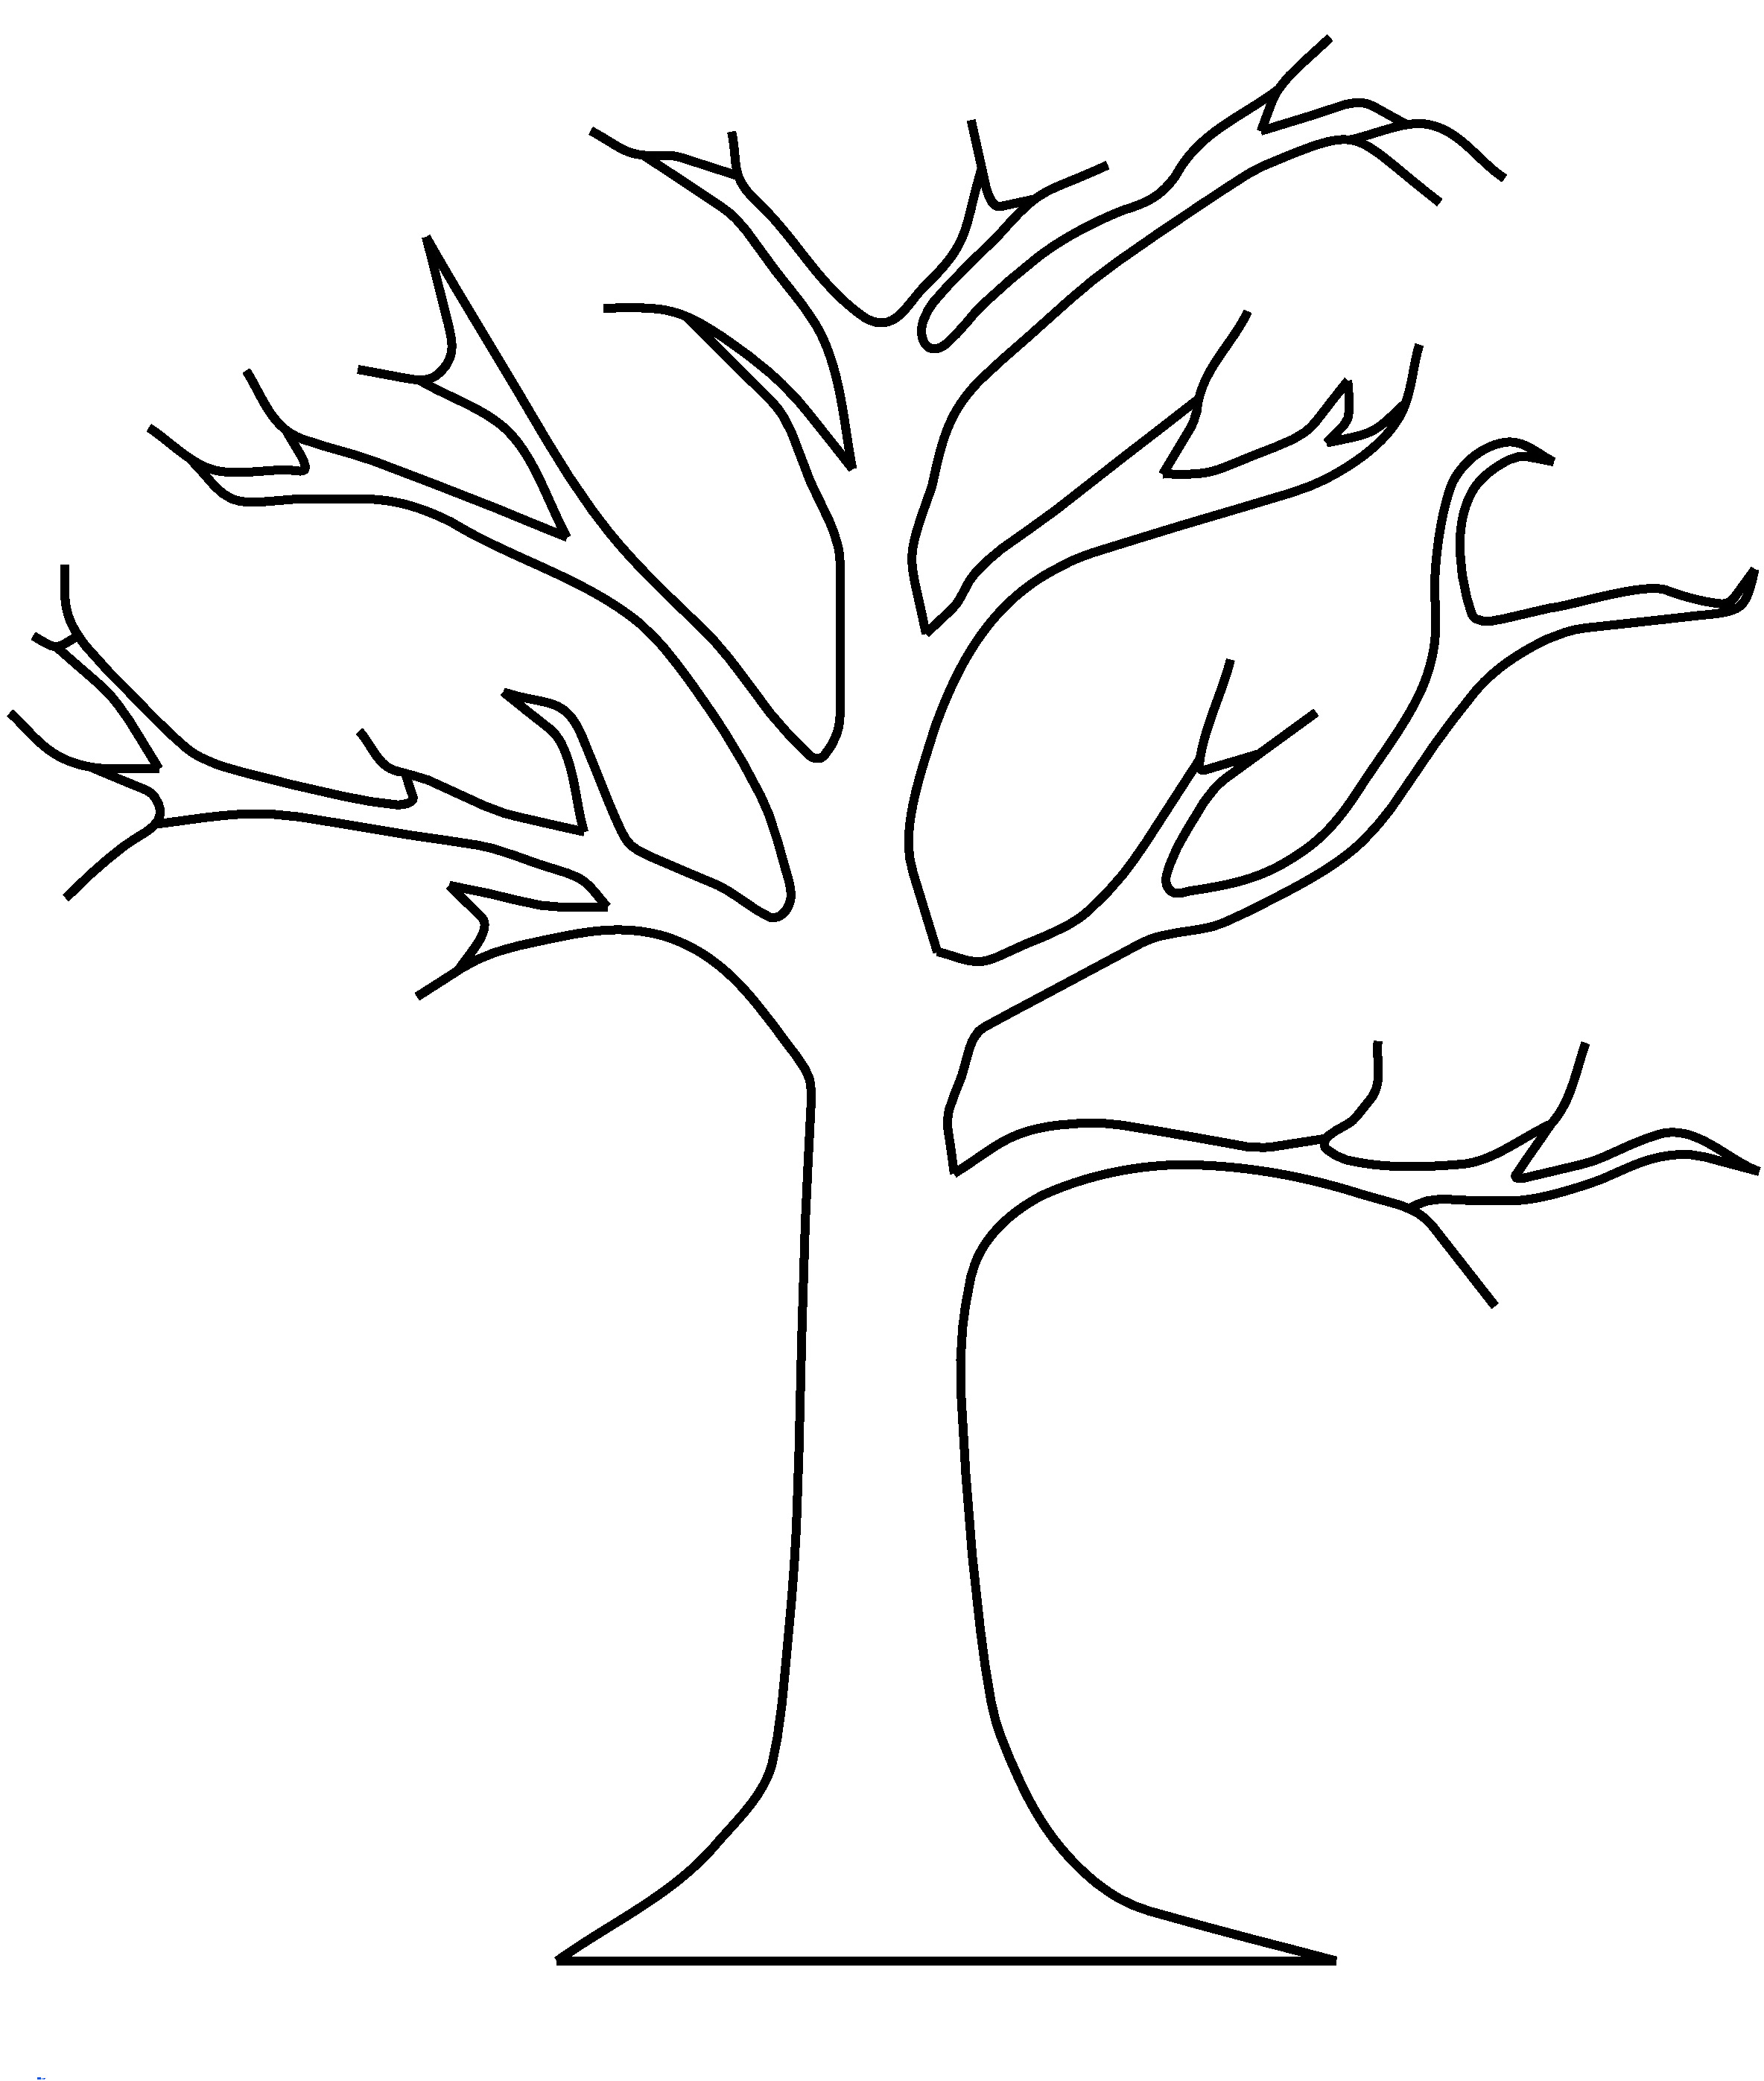 Birch tree branches coloring pages